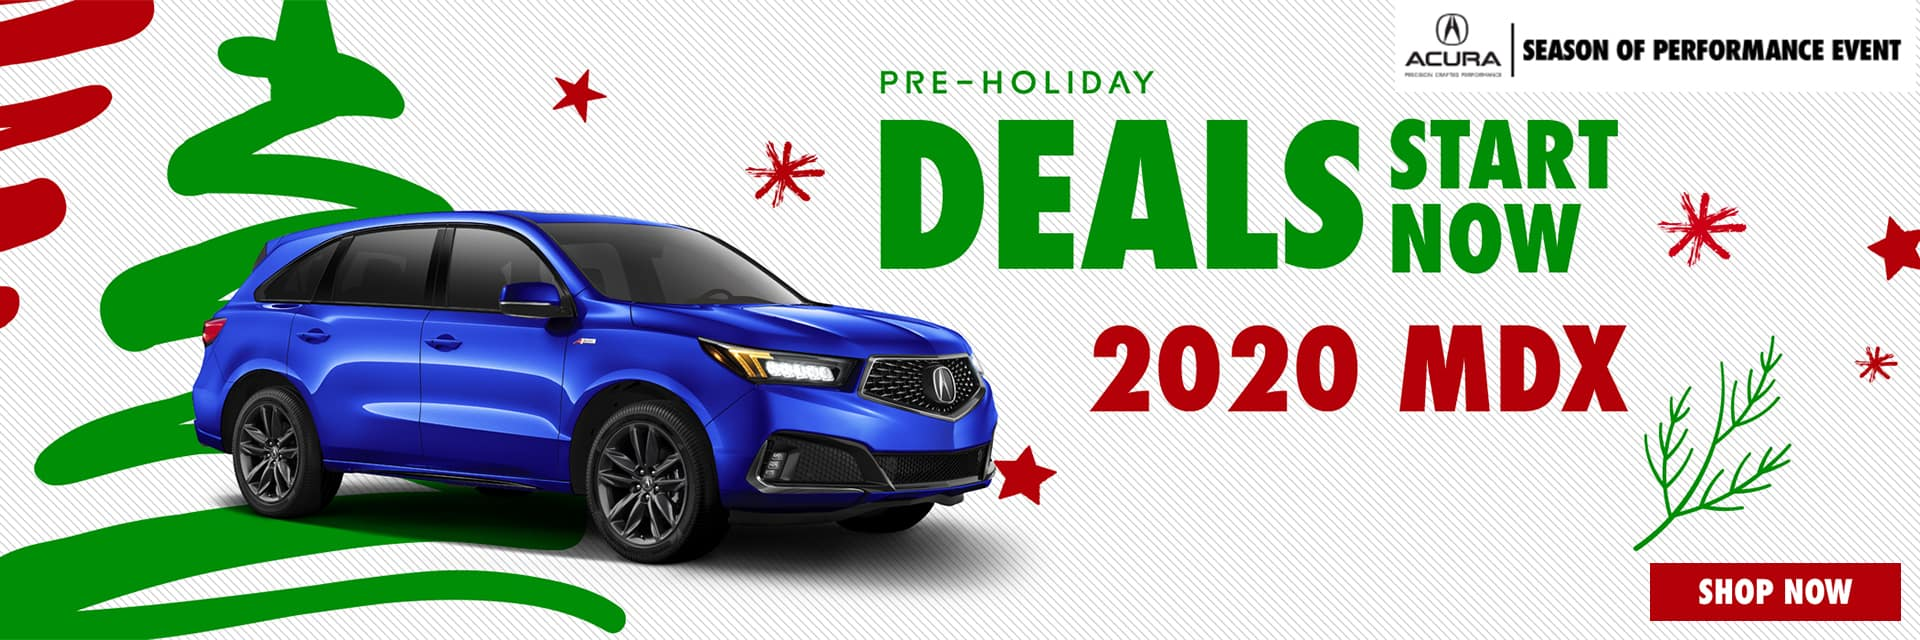 1920x640_CA_20058_Acura_Pre-Holiday Non-Offer_CTROT_DAA MDX